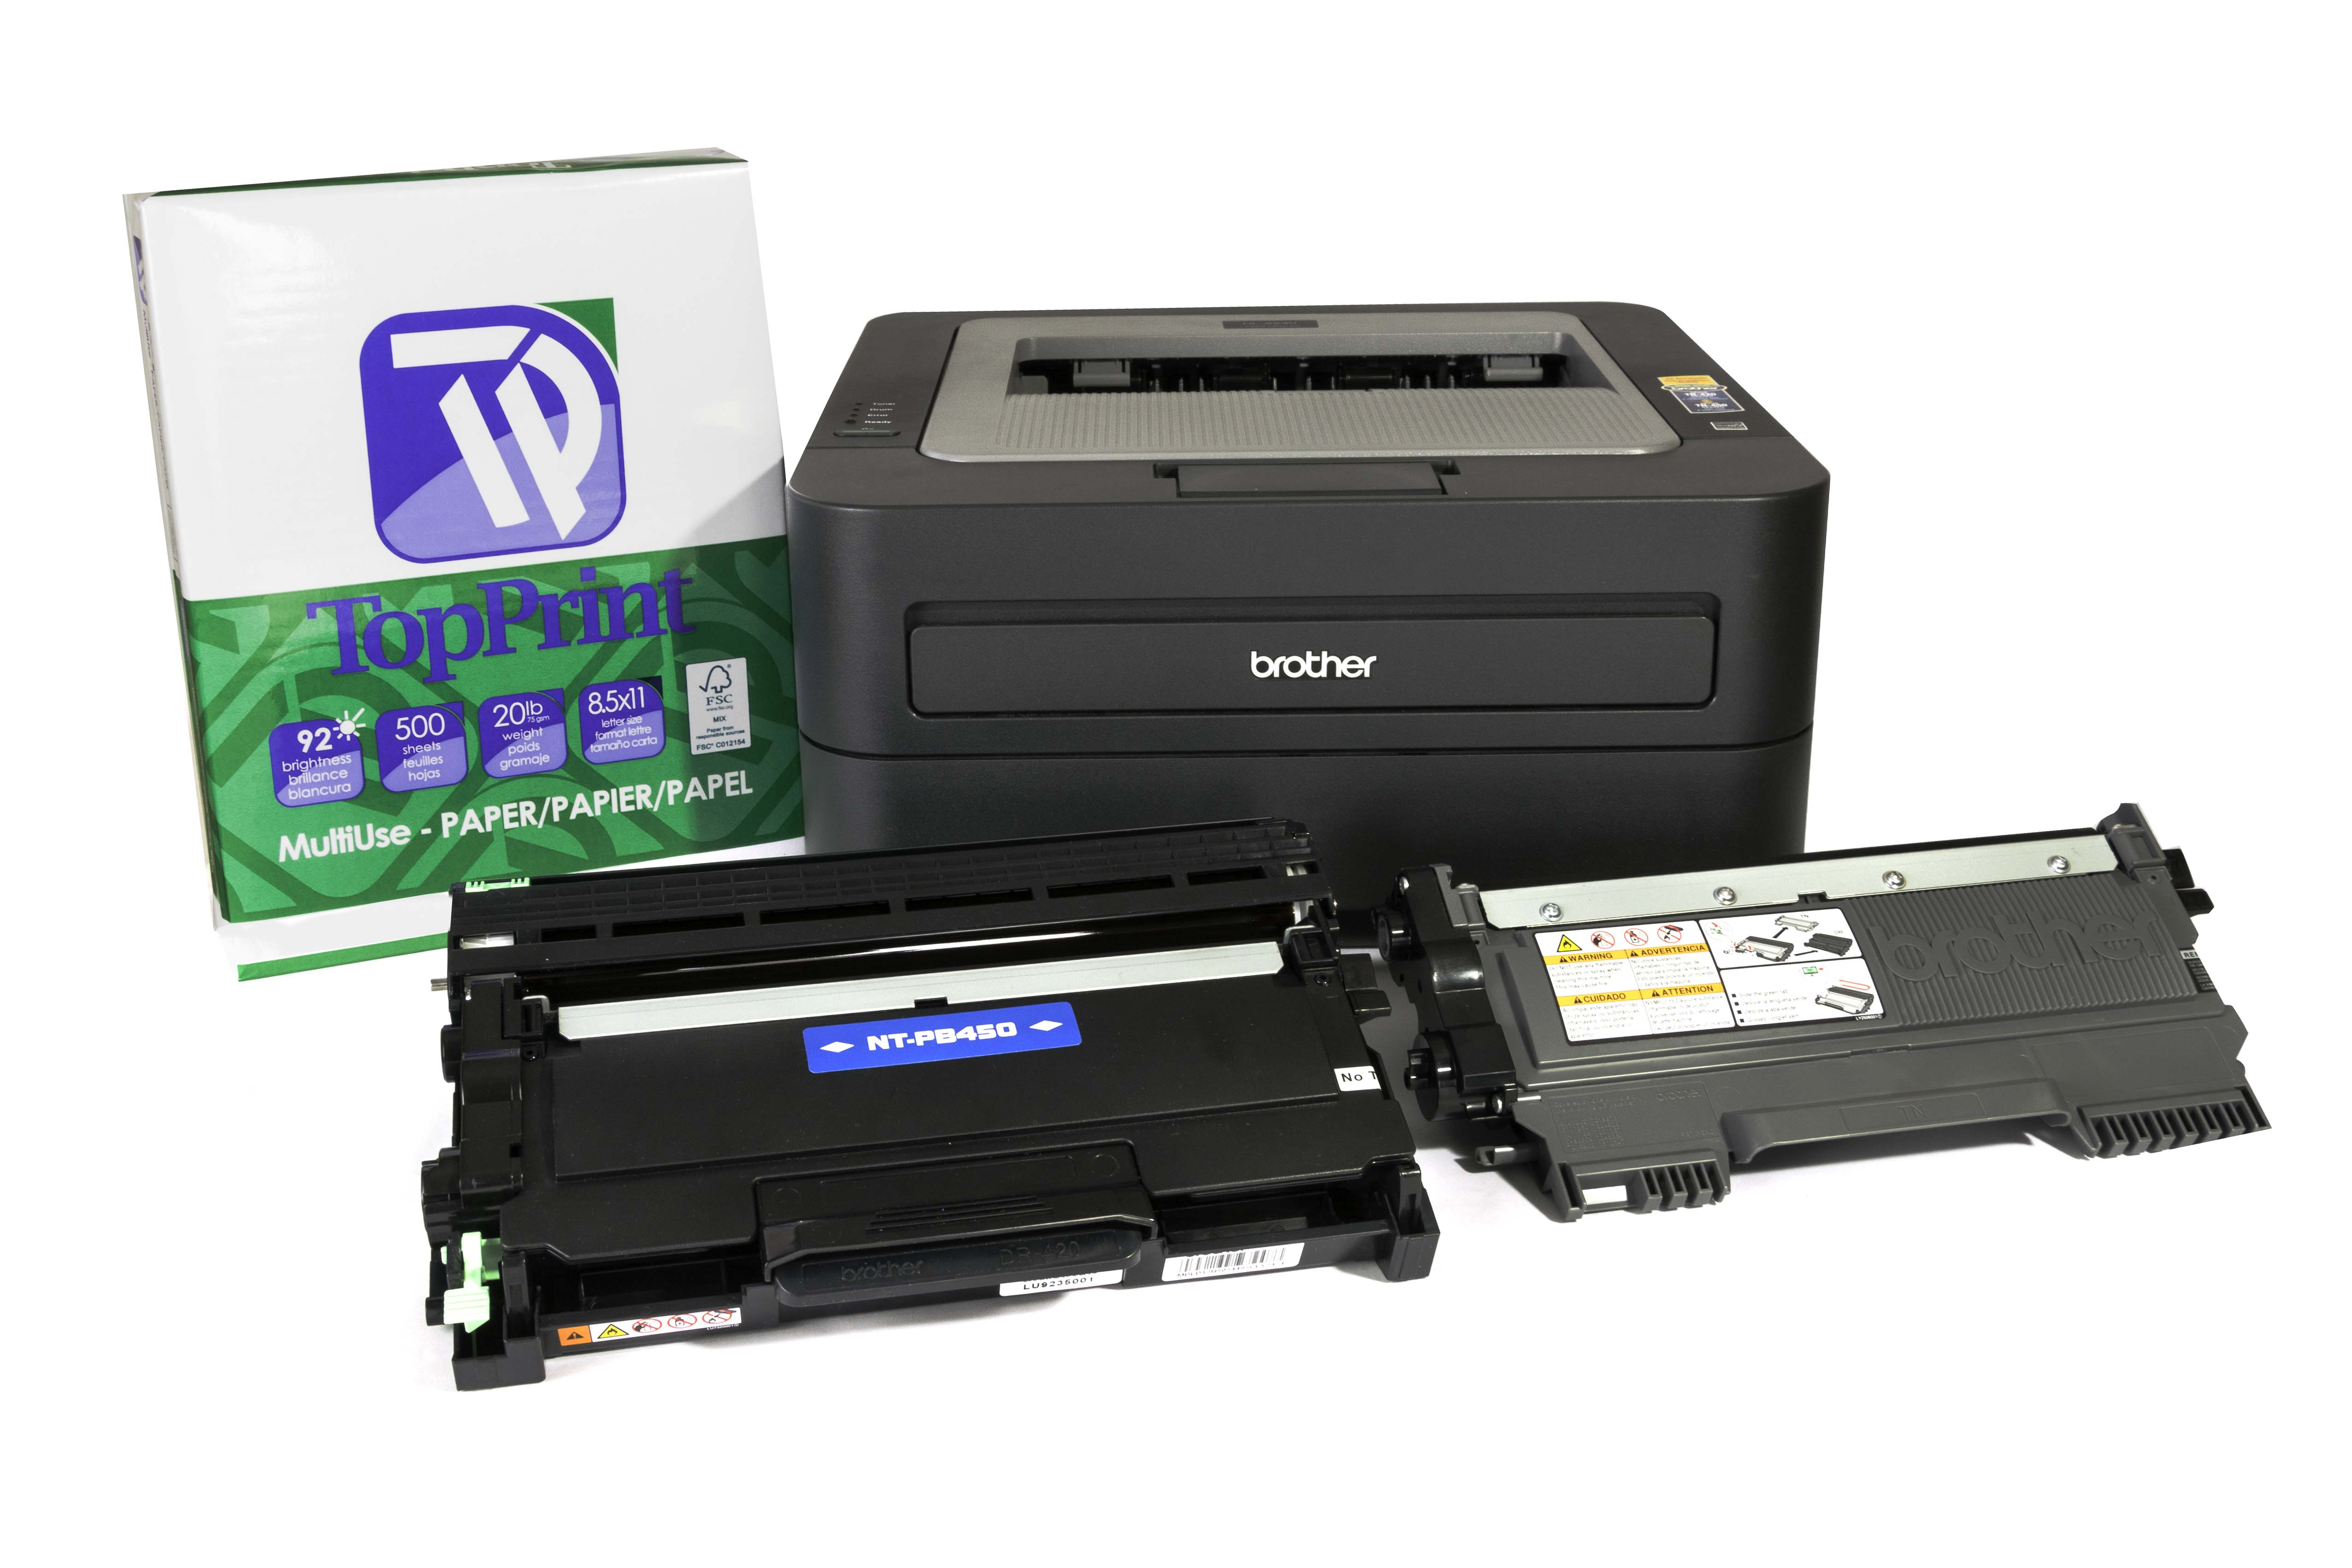 Brother HL-2240 printer, TN-450 compatible toner , TN-420 OEM toner, DR-420 drum unit, TopPrint copy paper